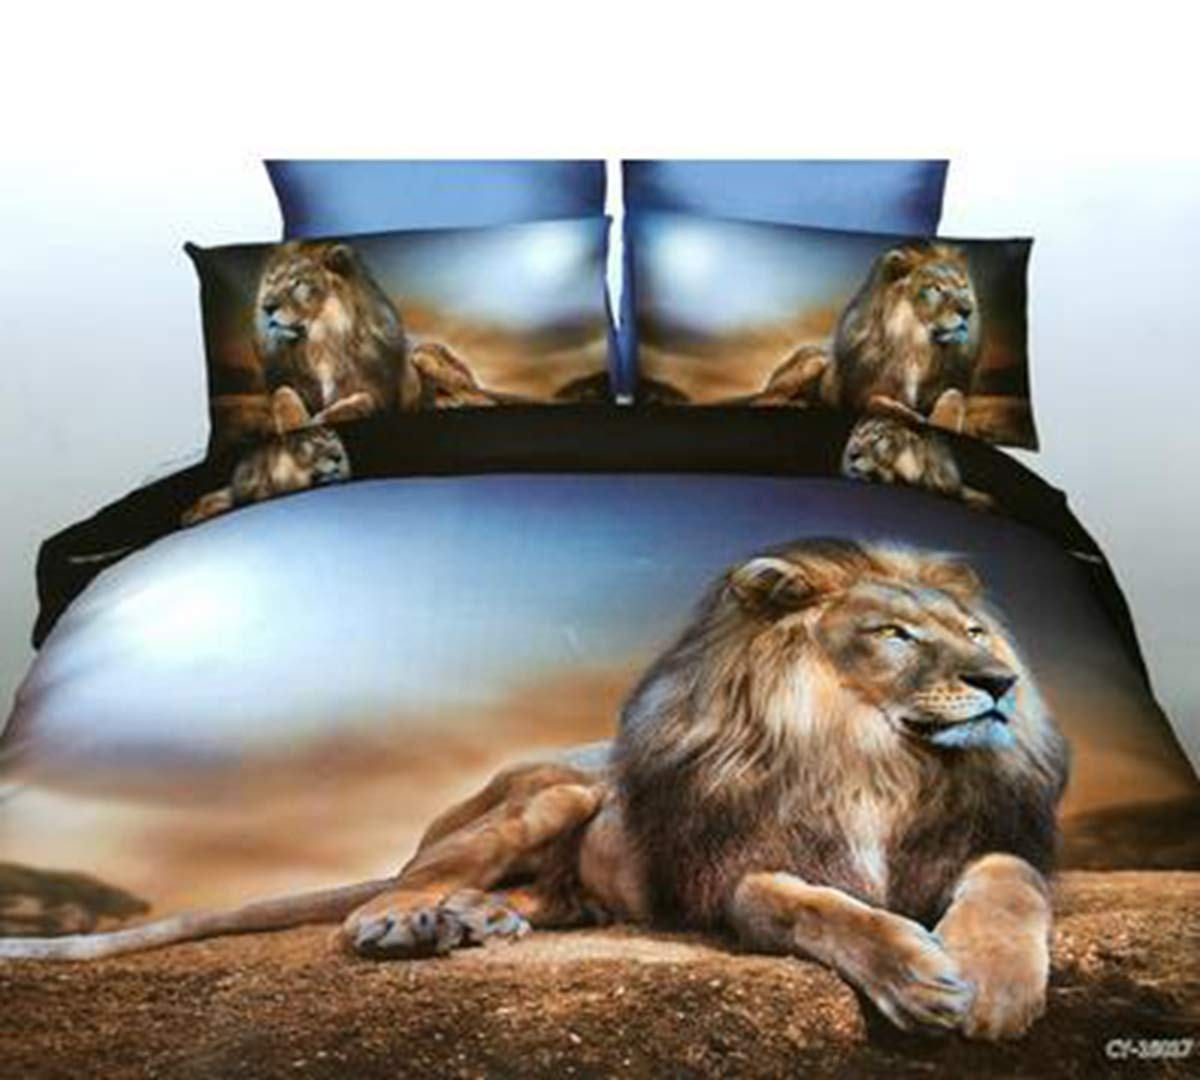 HUROohj 3D,The New Bedding Four Sets,European Style,Bedding Kits( 4 Pcs) for Bed Size Twin/Queen/King,-King